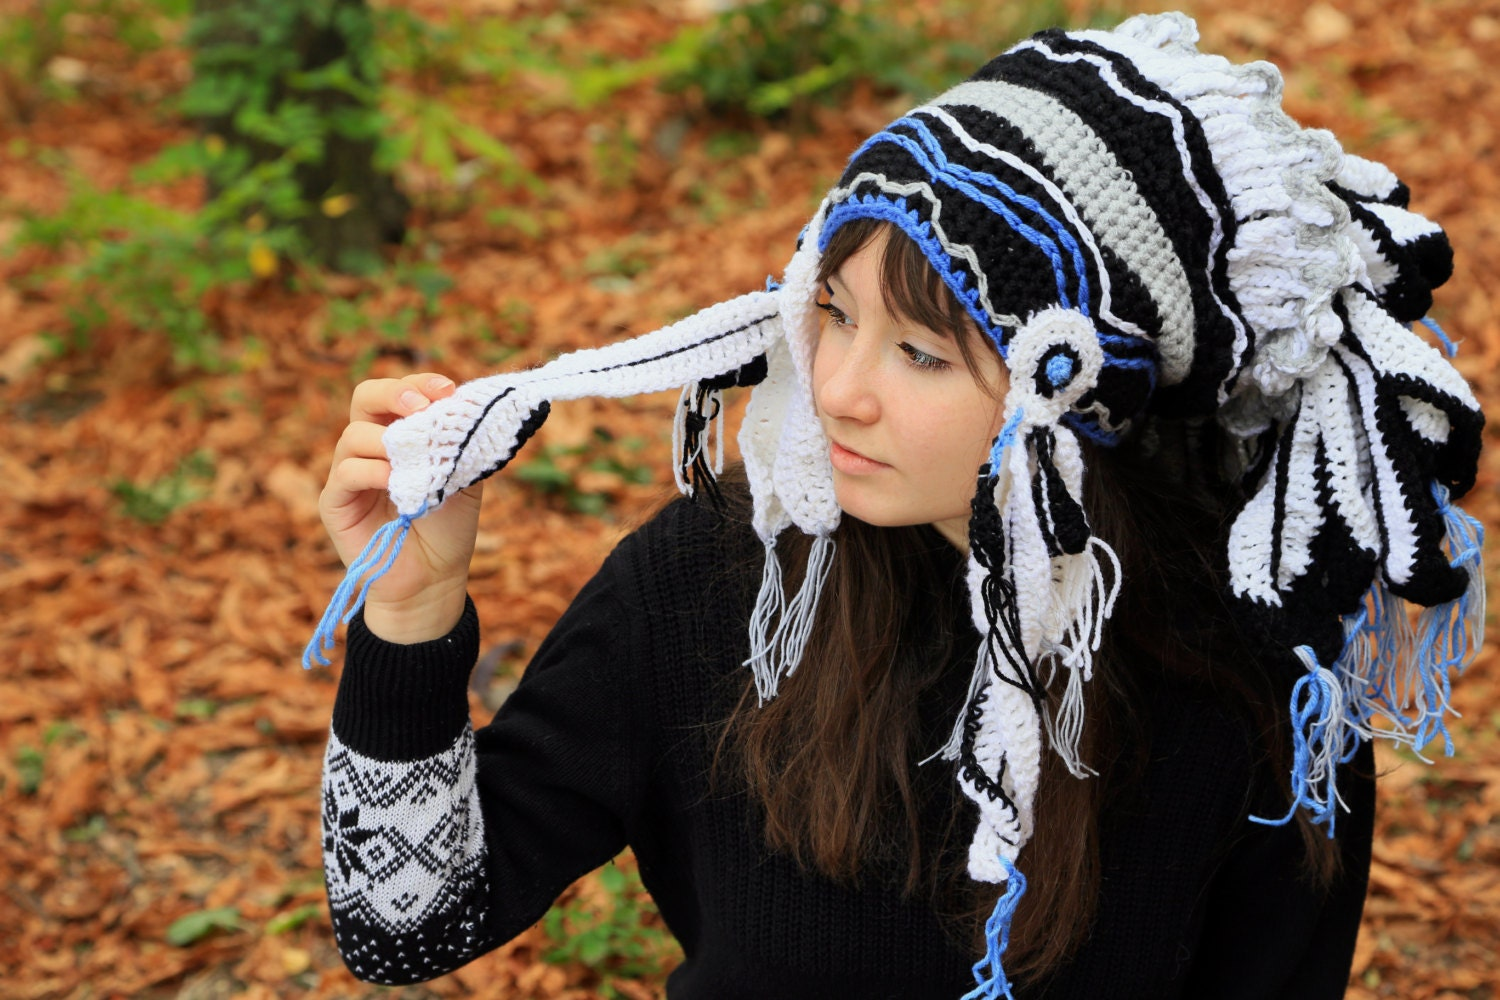 Blue crochet beanie imitation indian headdress Native style ethnic Chief  adult hat Handmade feather Knitted shaman roach Gift idea for him